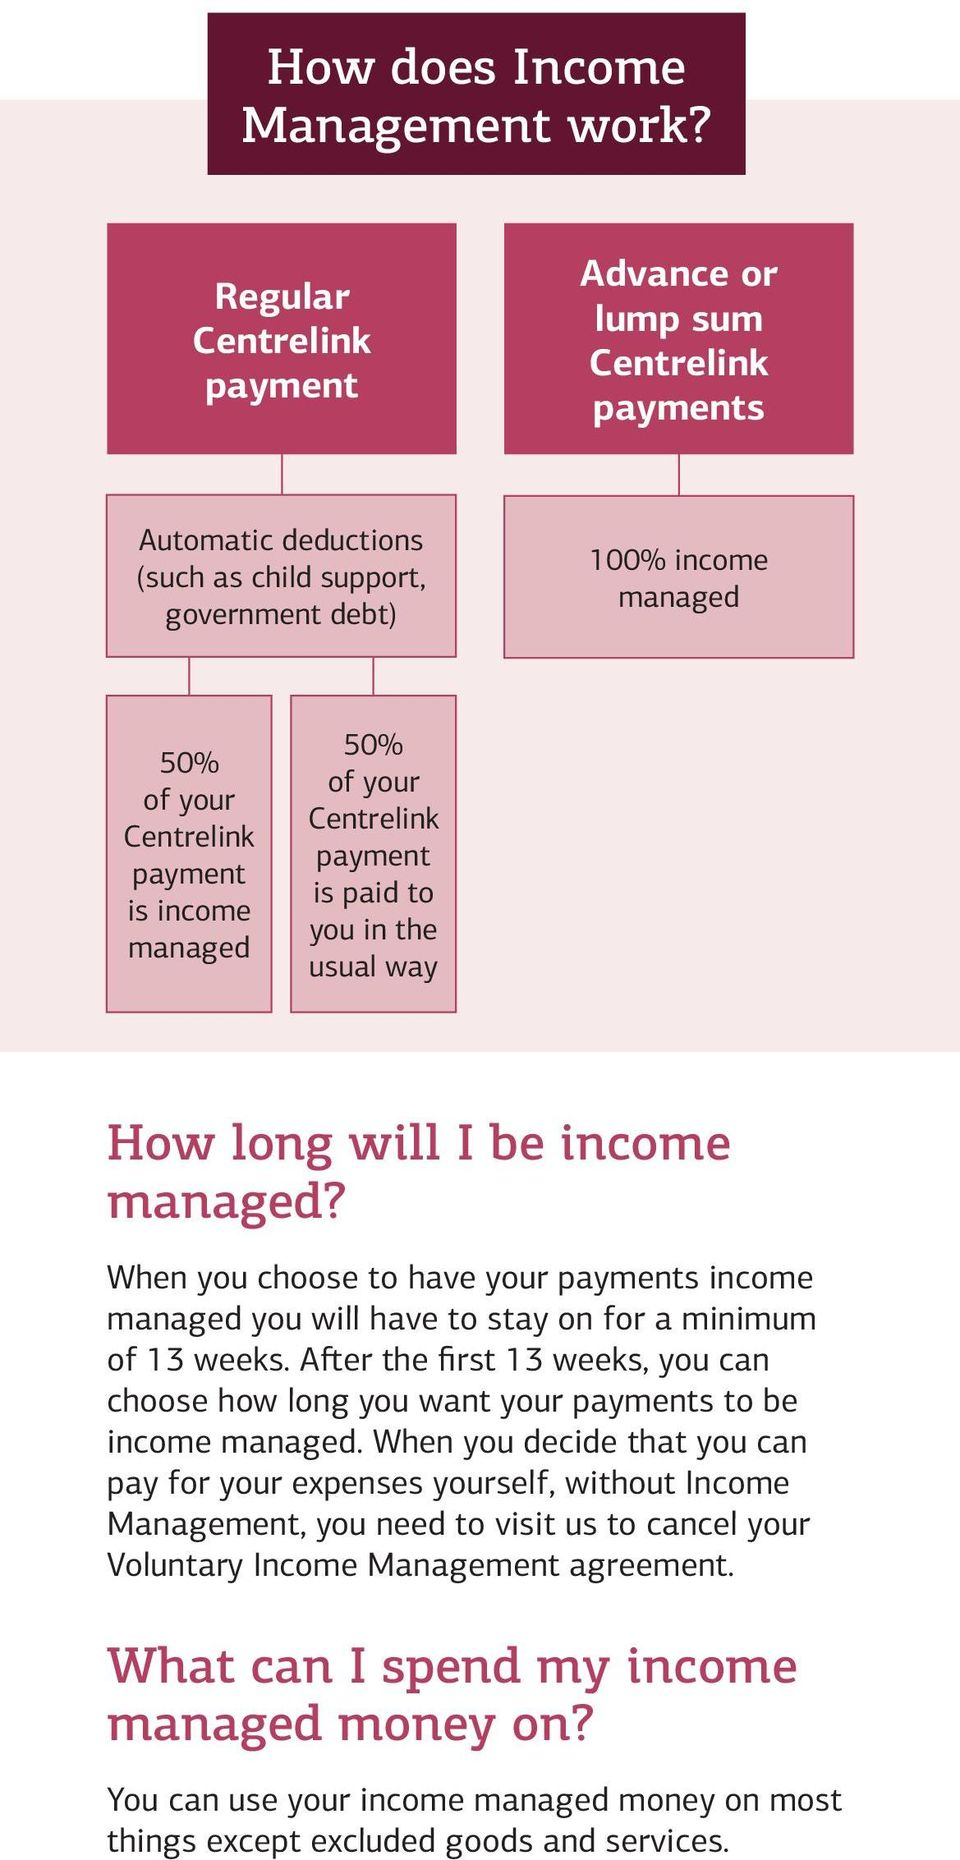 50% of your Centrelink payment is paid to you in the usual way How long will I be income managed?